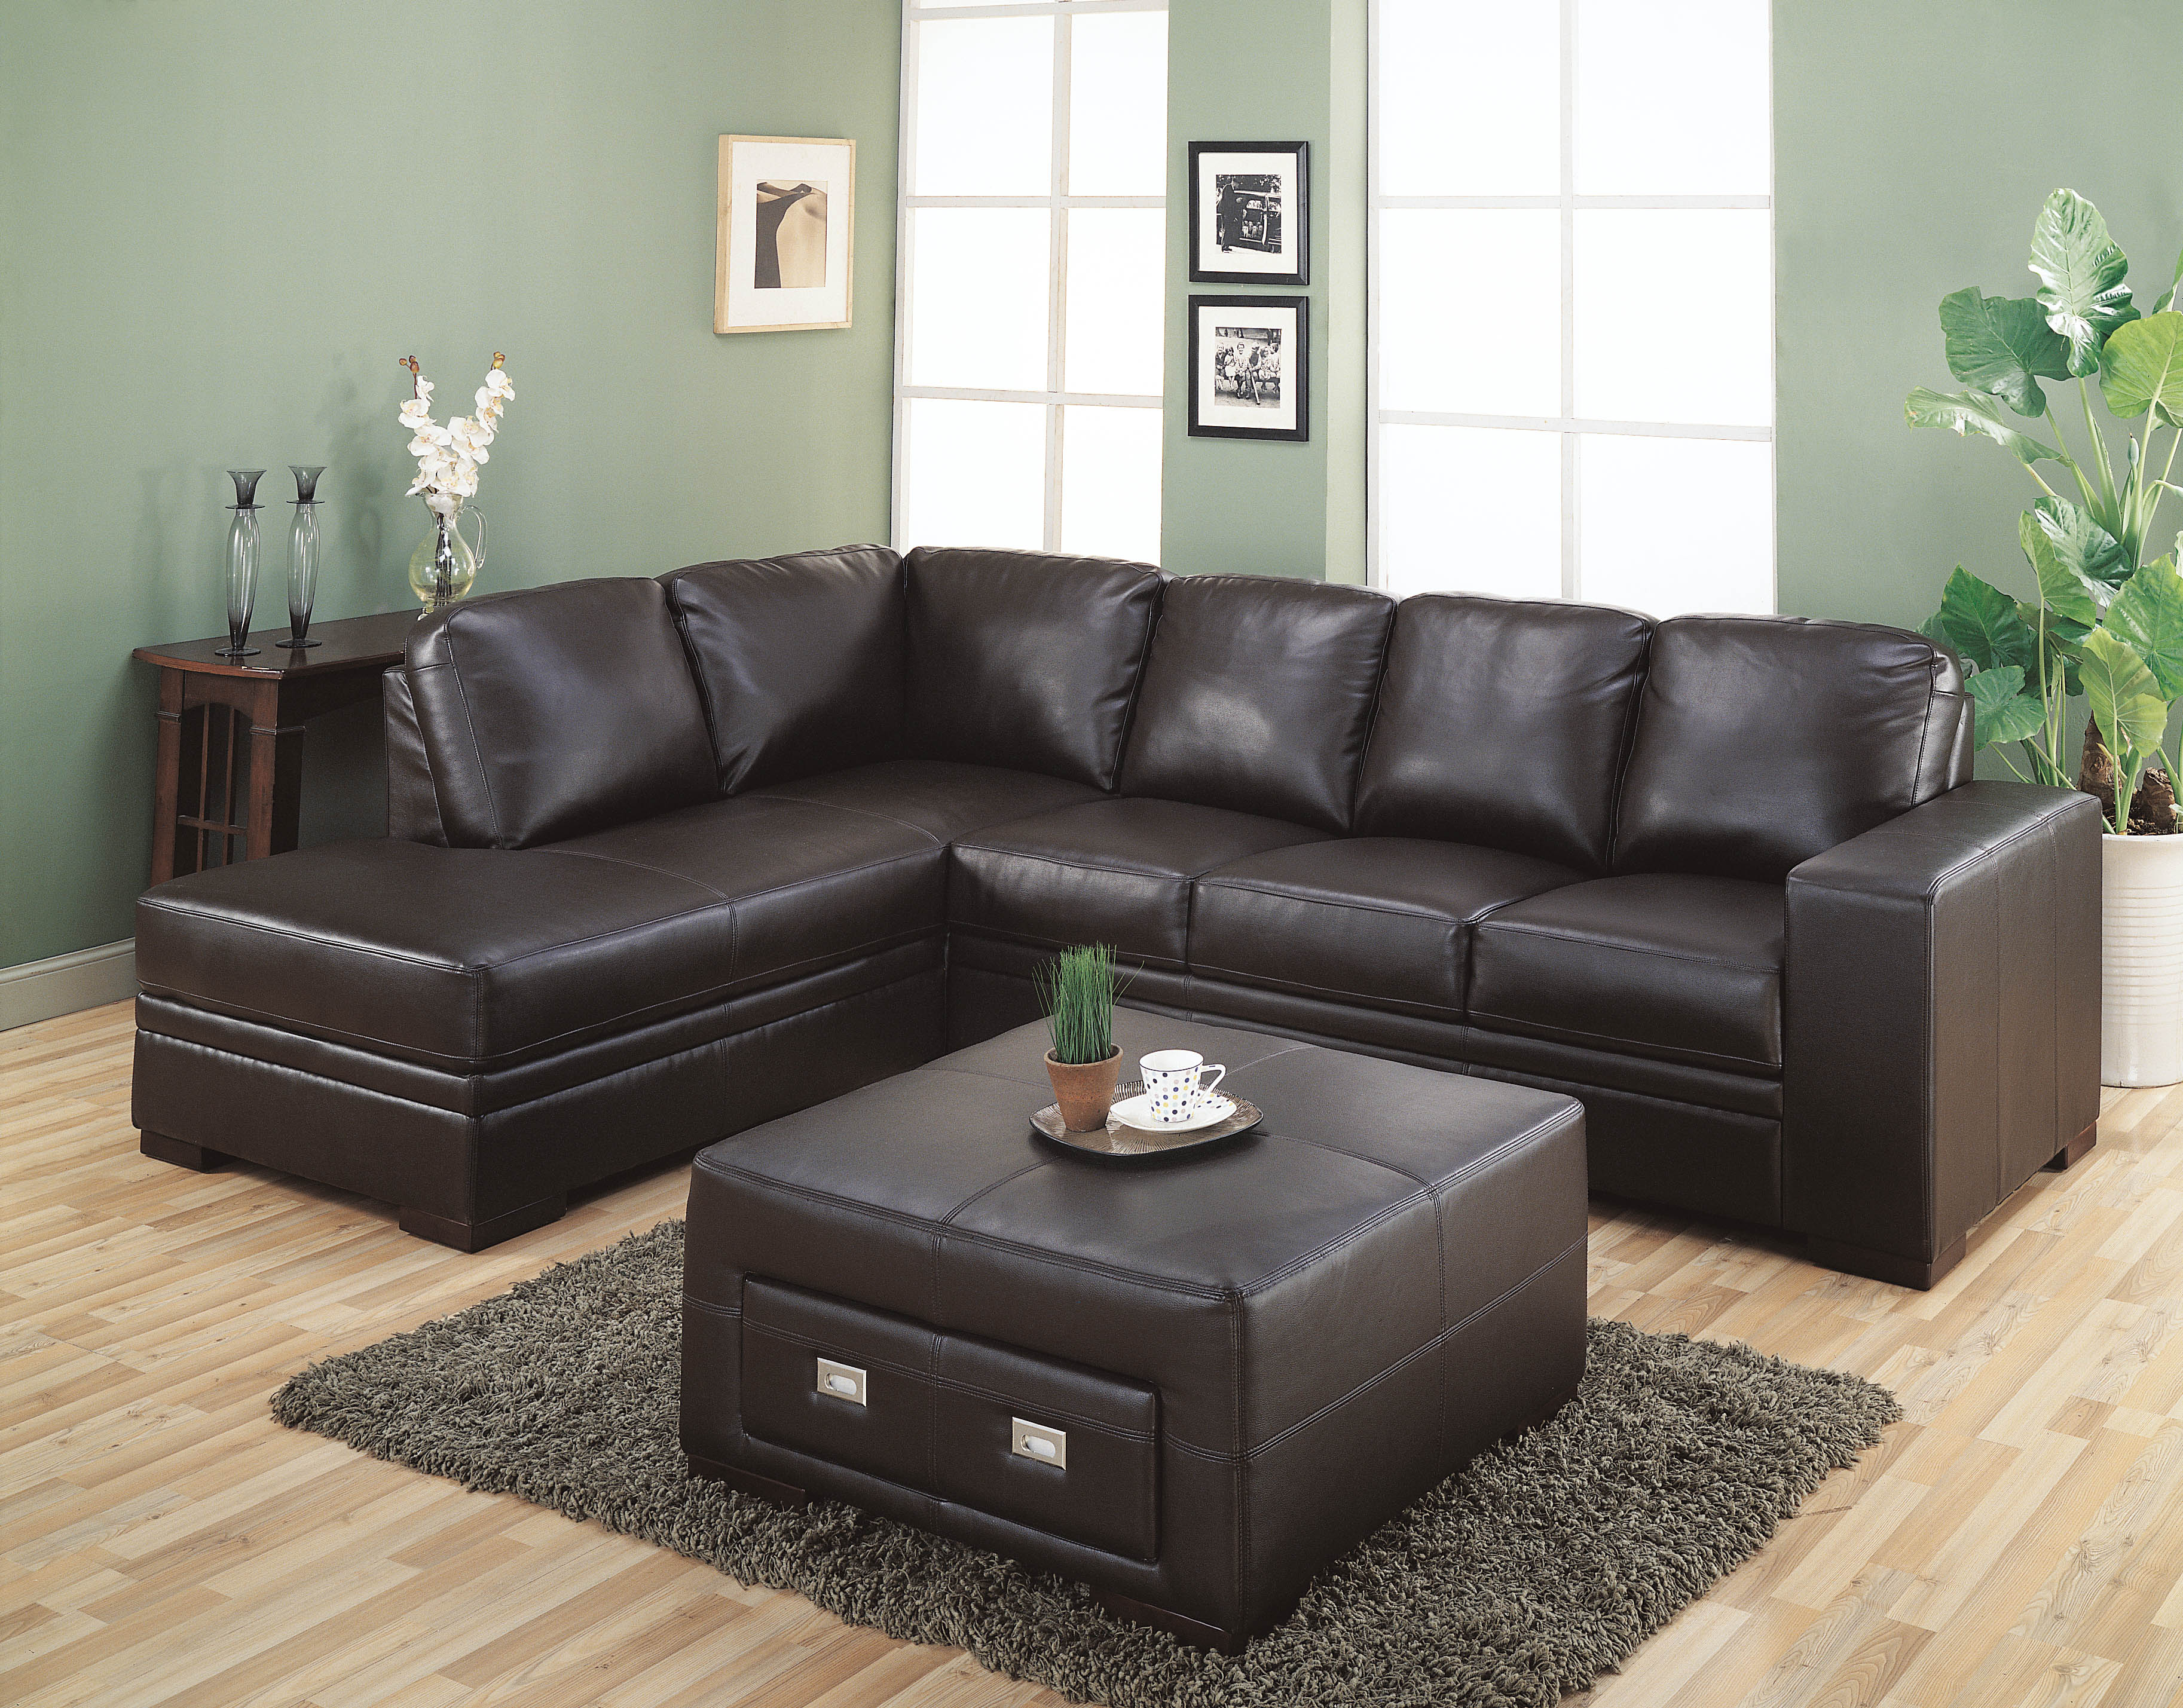 Furniture gt Living Room Sectional Sofa Chocolate Leather